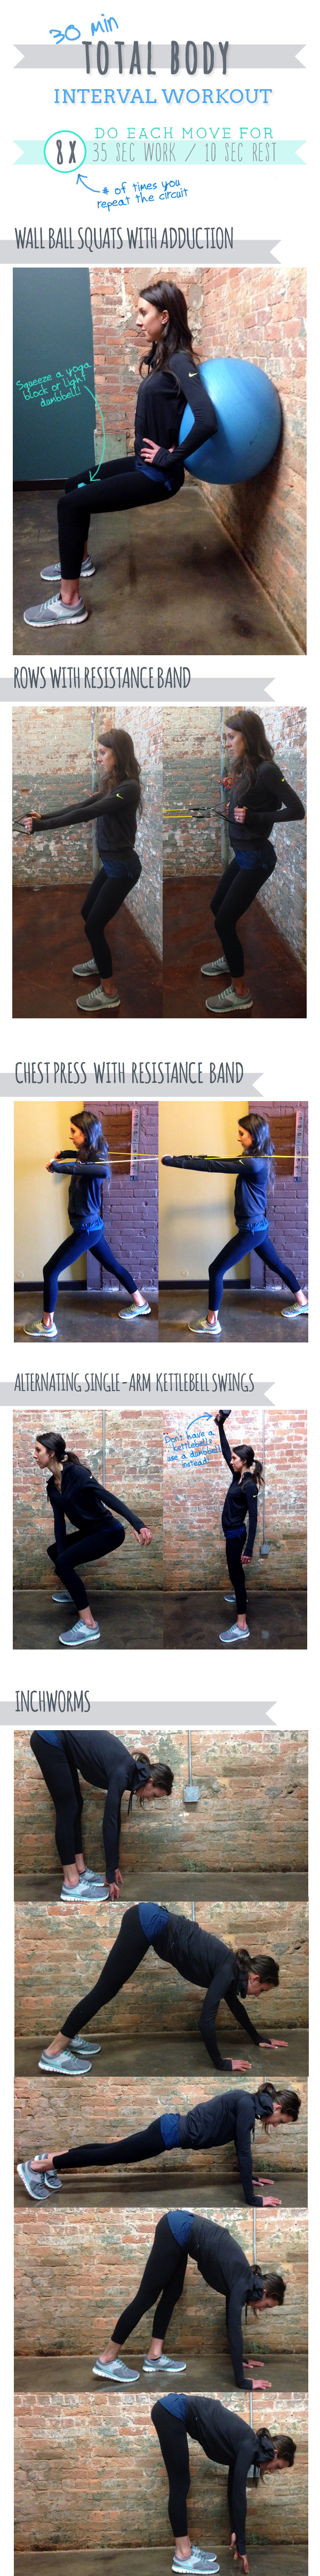 30-minute-Total-Body-Interval-Circuit-Workout